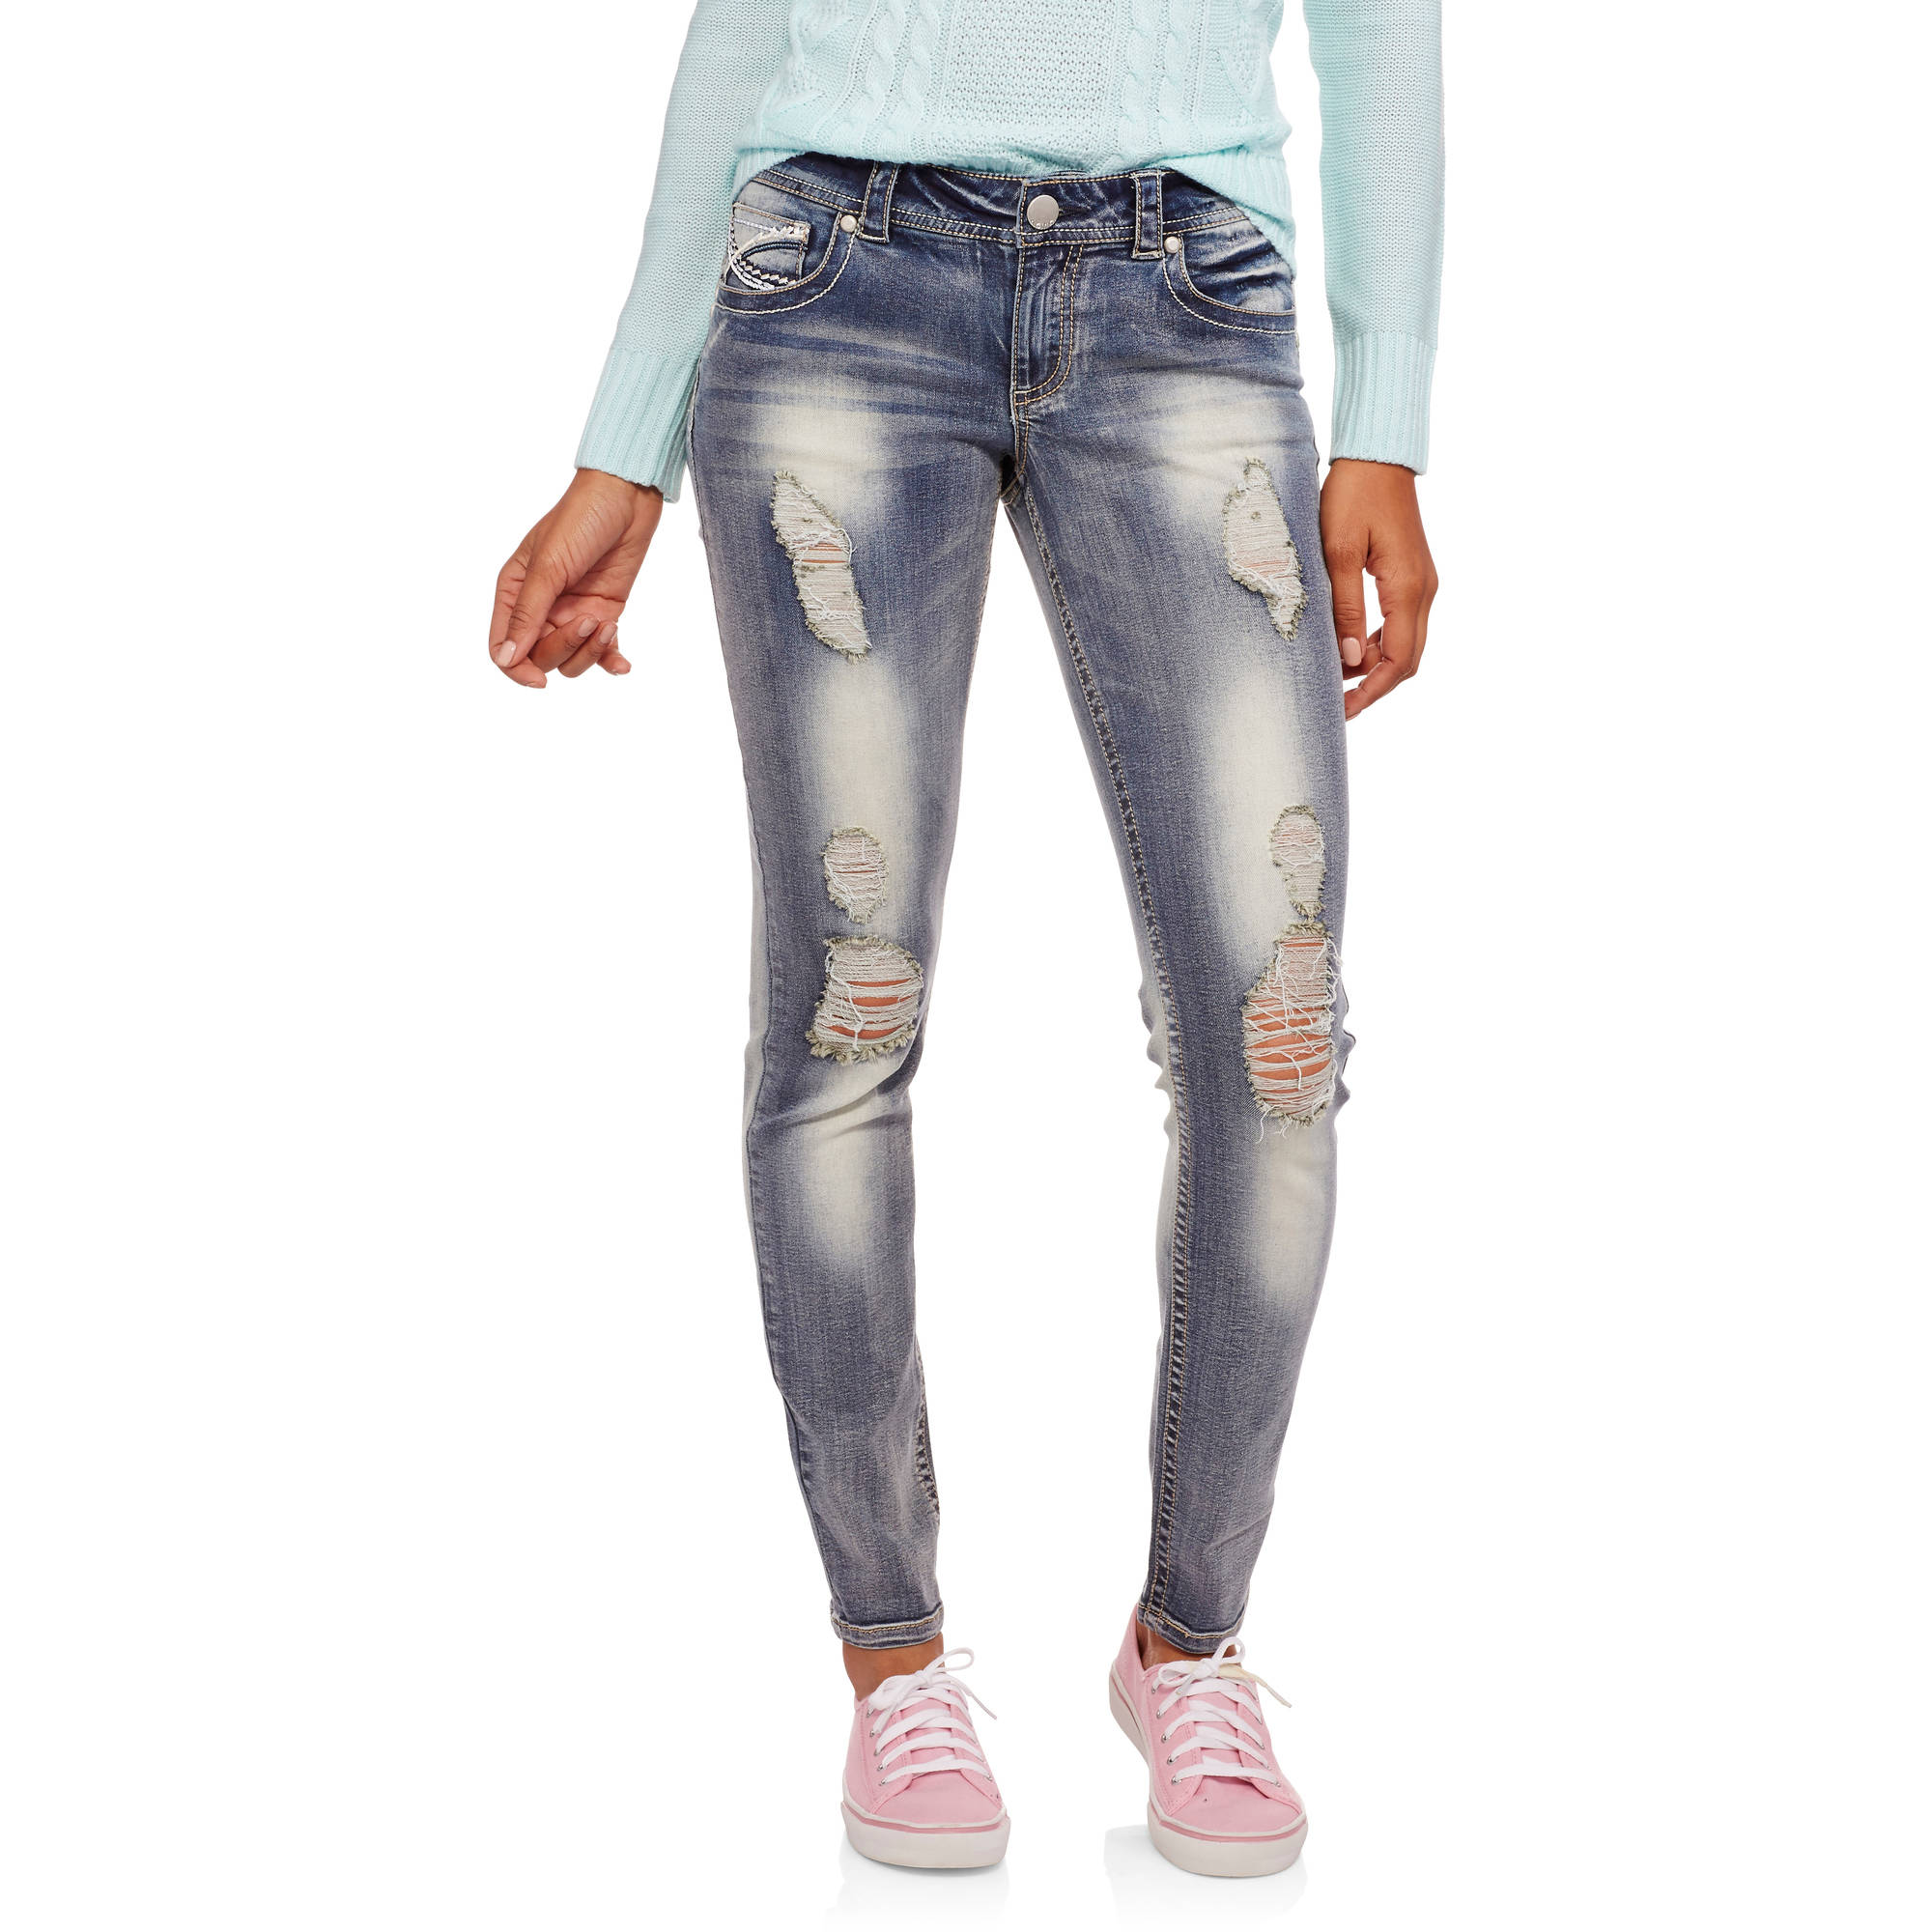 No Boundaries Juniors' Thick Stitch Skinny Jeans with Backflap Pockets